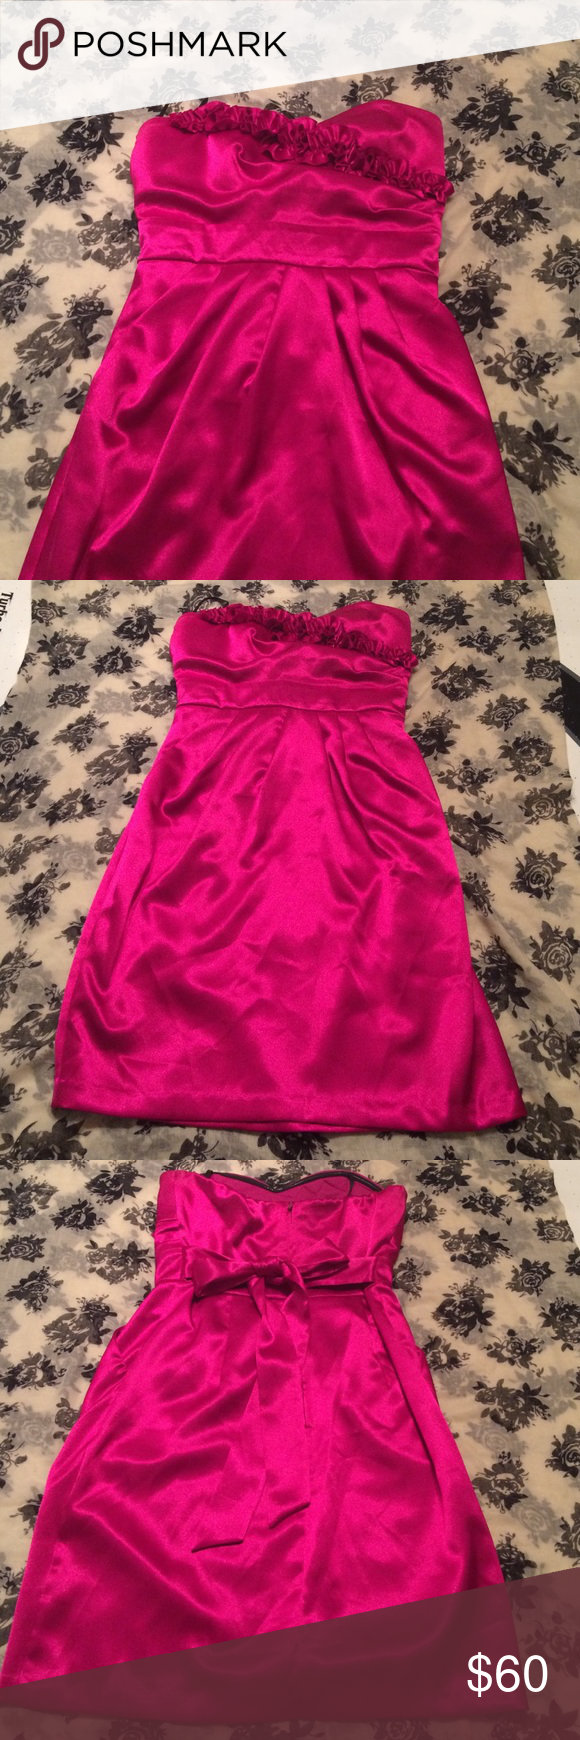 Fuchsia formal dress this once worn dress size fits from bcx